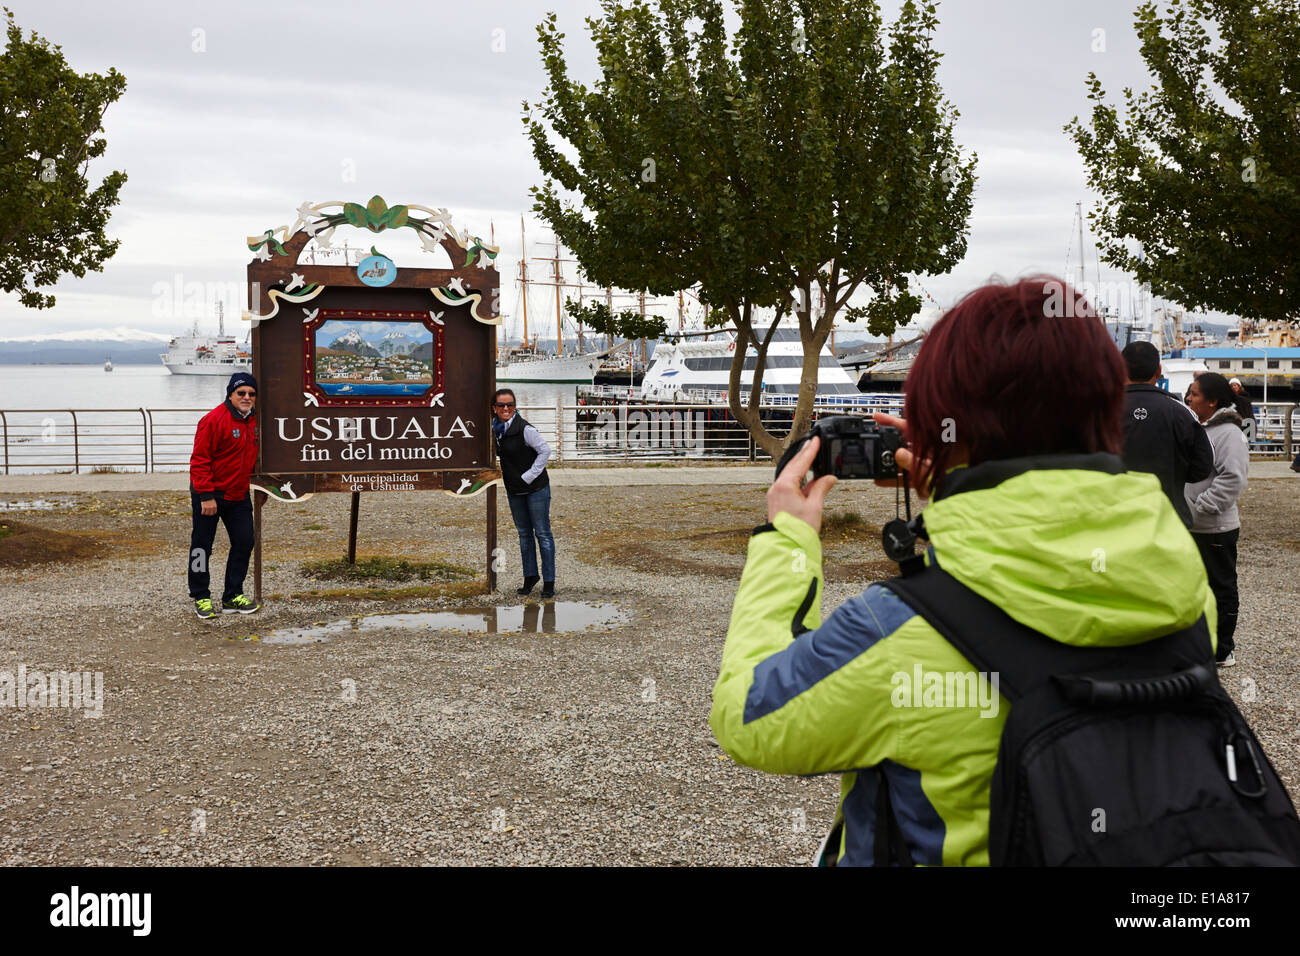 tourists taking photos at Ushuaia fin del mundo end of the world sign Argentina - Stock Image